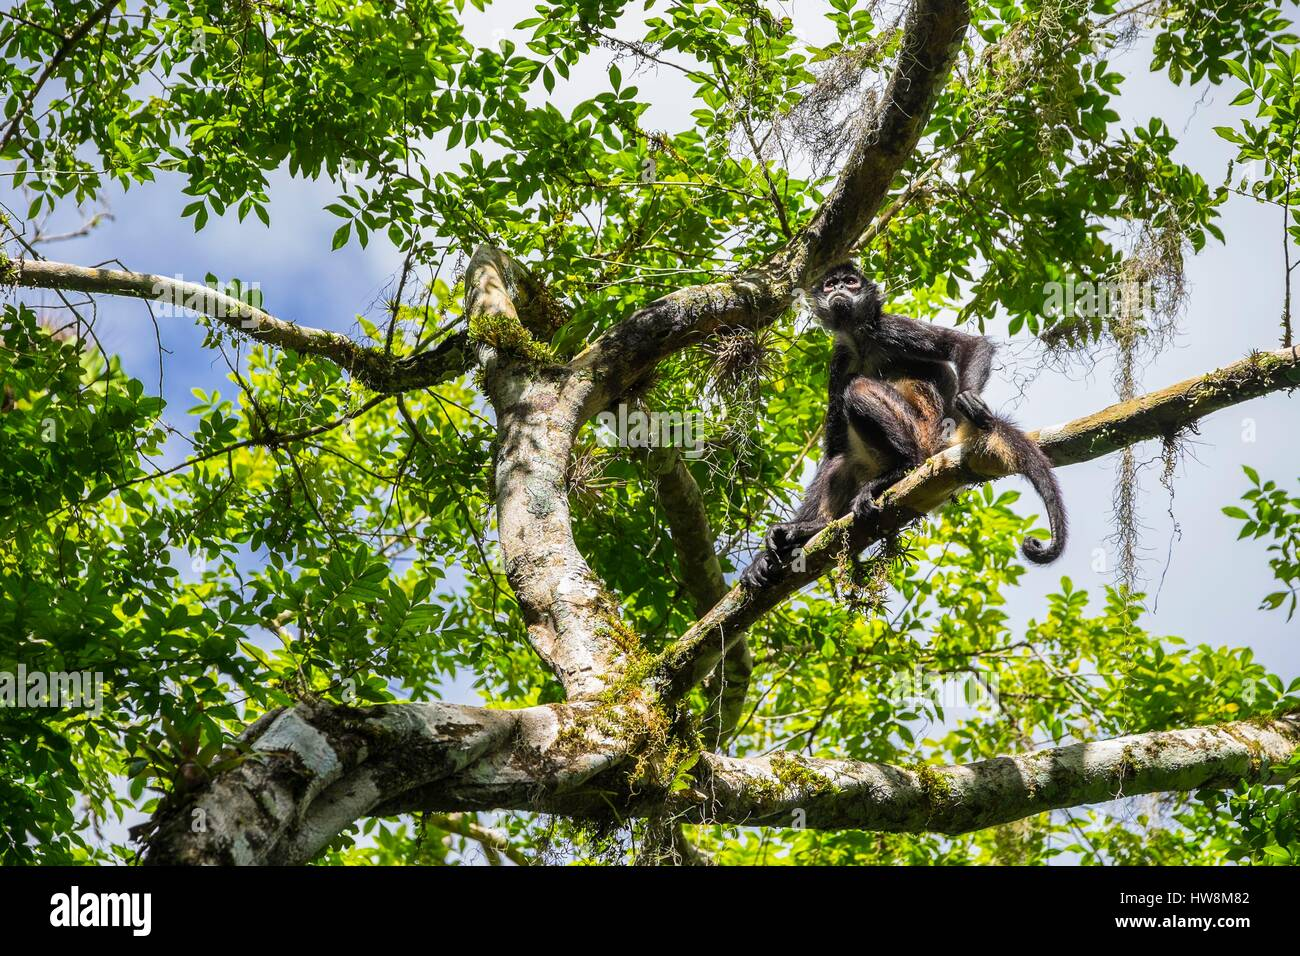 Guatemala, Peten department, Tikal National Park, a UNESCO World Heritage site, spider monkey - Stock Image